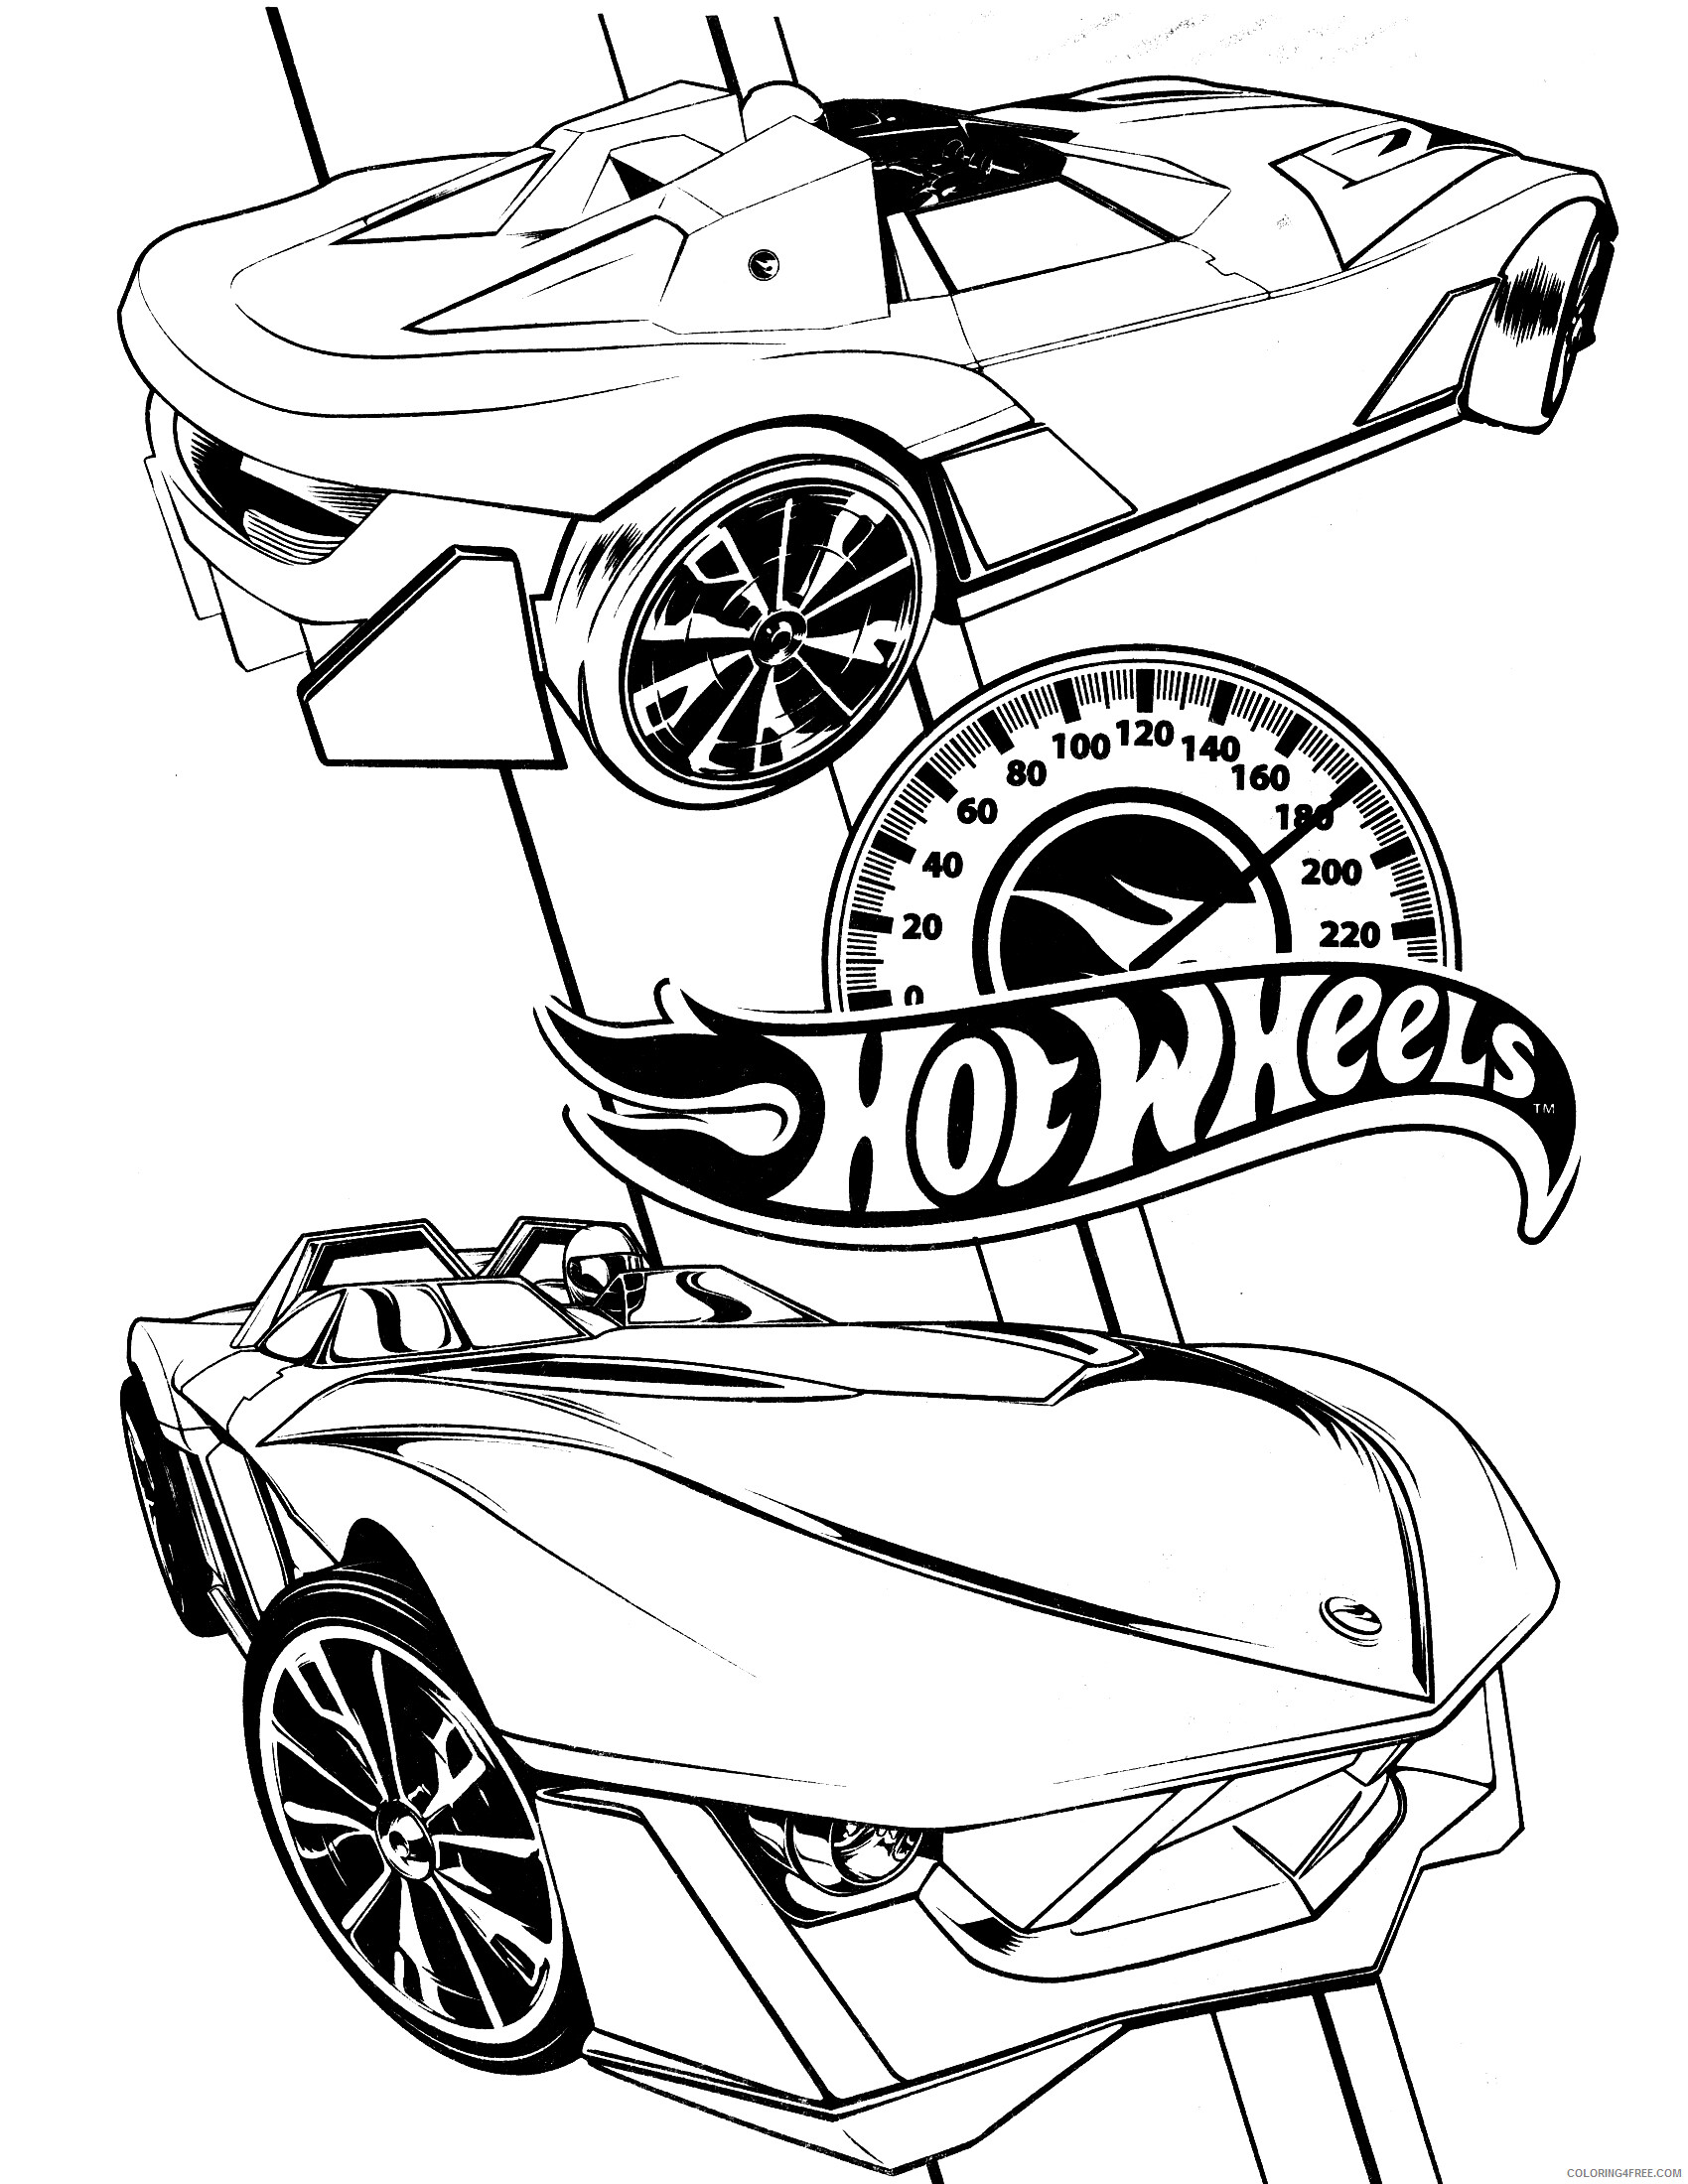 Hot Wheels Coloring Pages Lego Hot Wheels Printable 2021 3452 Coloring4free